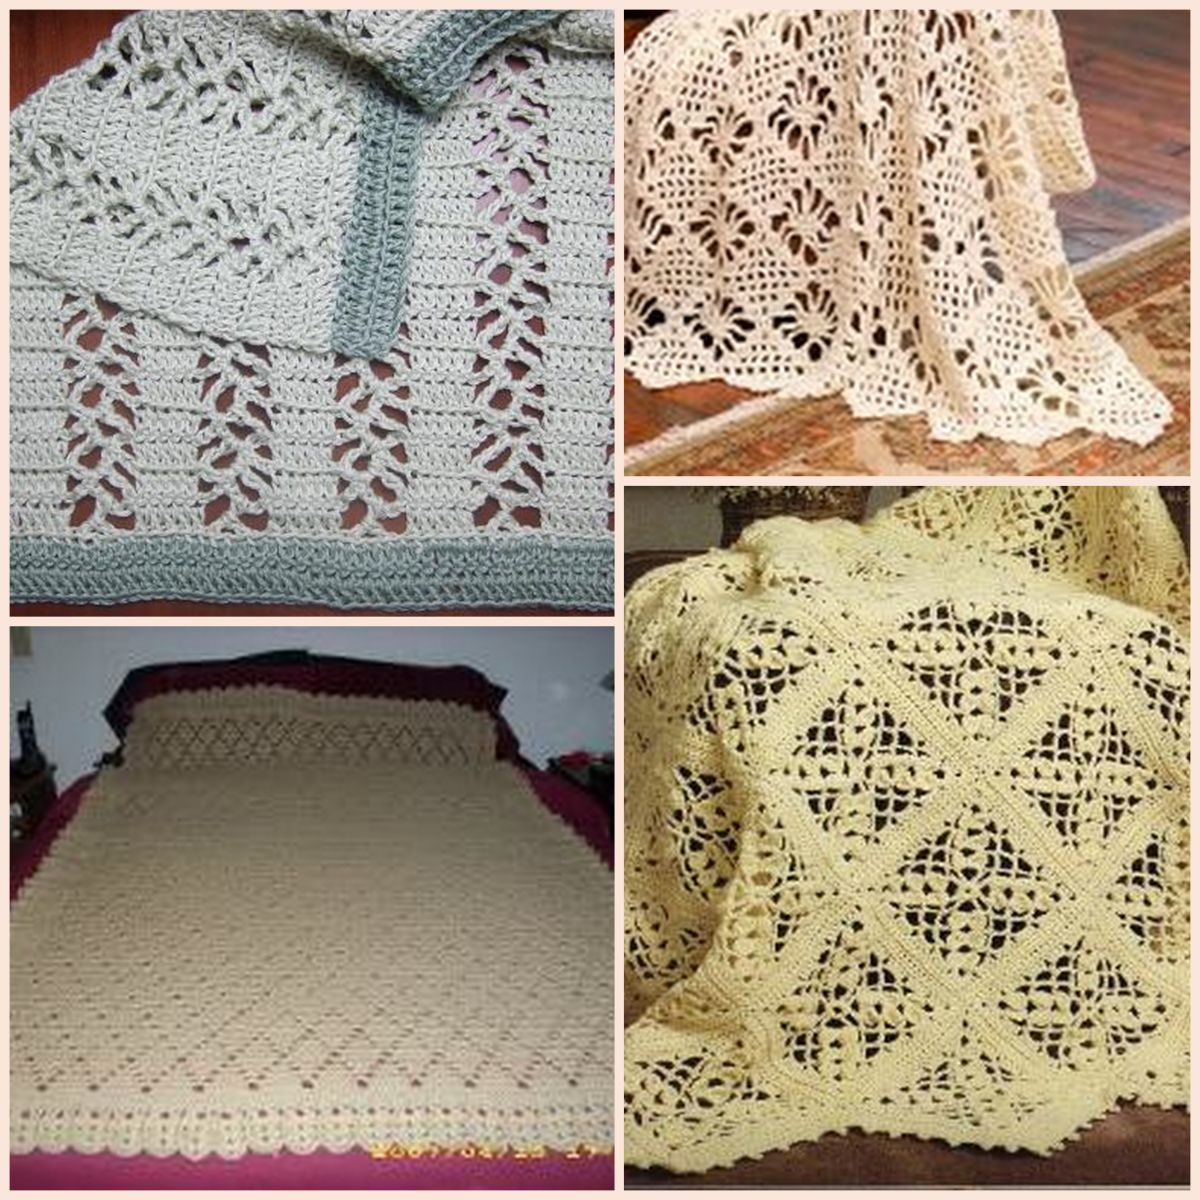 20 Lace Crochet Designs for Afghans AllFreeCrochetAfghanPatterns.com